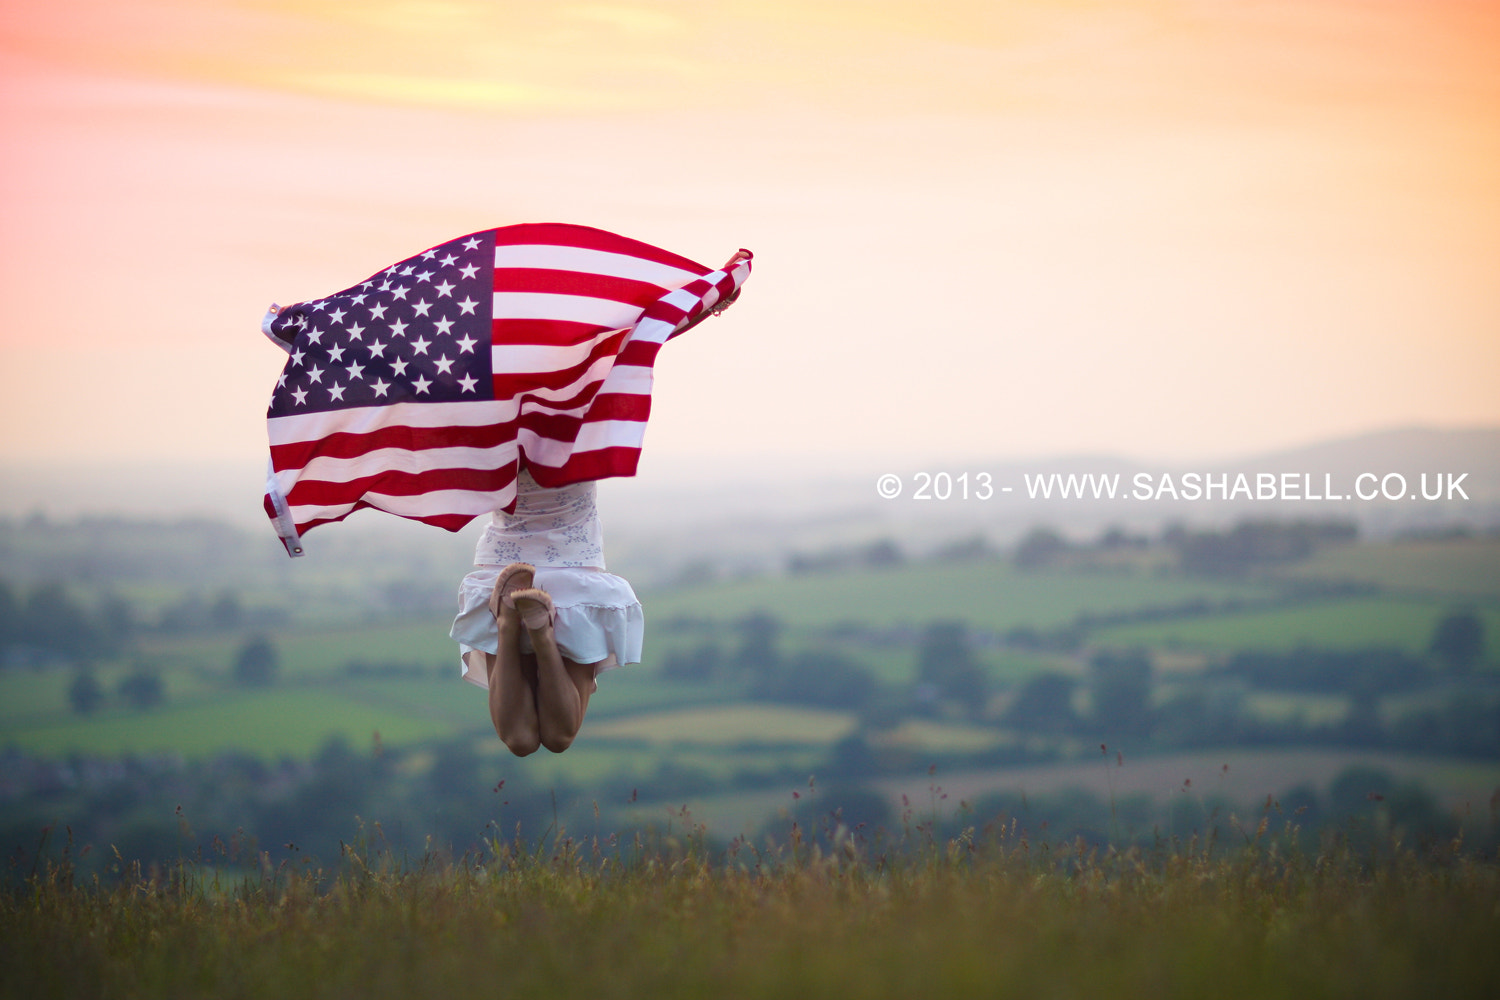 Photograph Jumping with the US Flag by Sasha L'Estrange-Bell on 500px